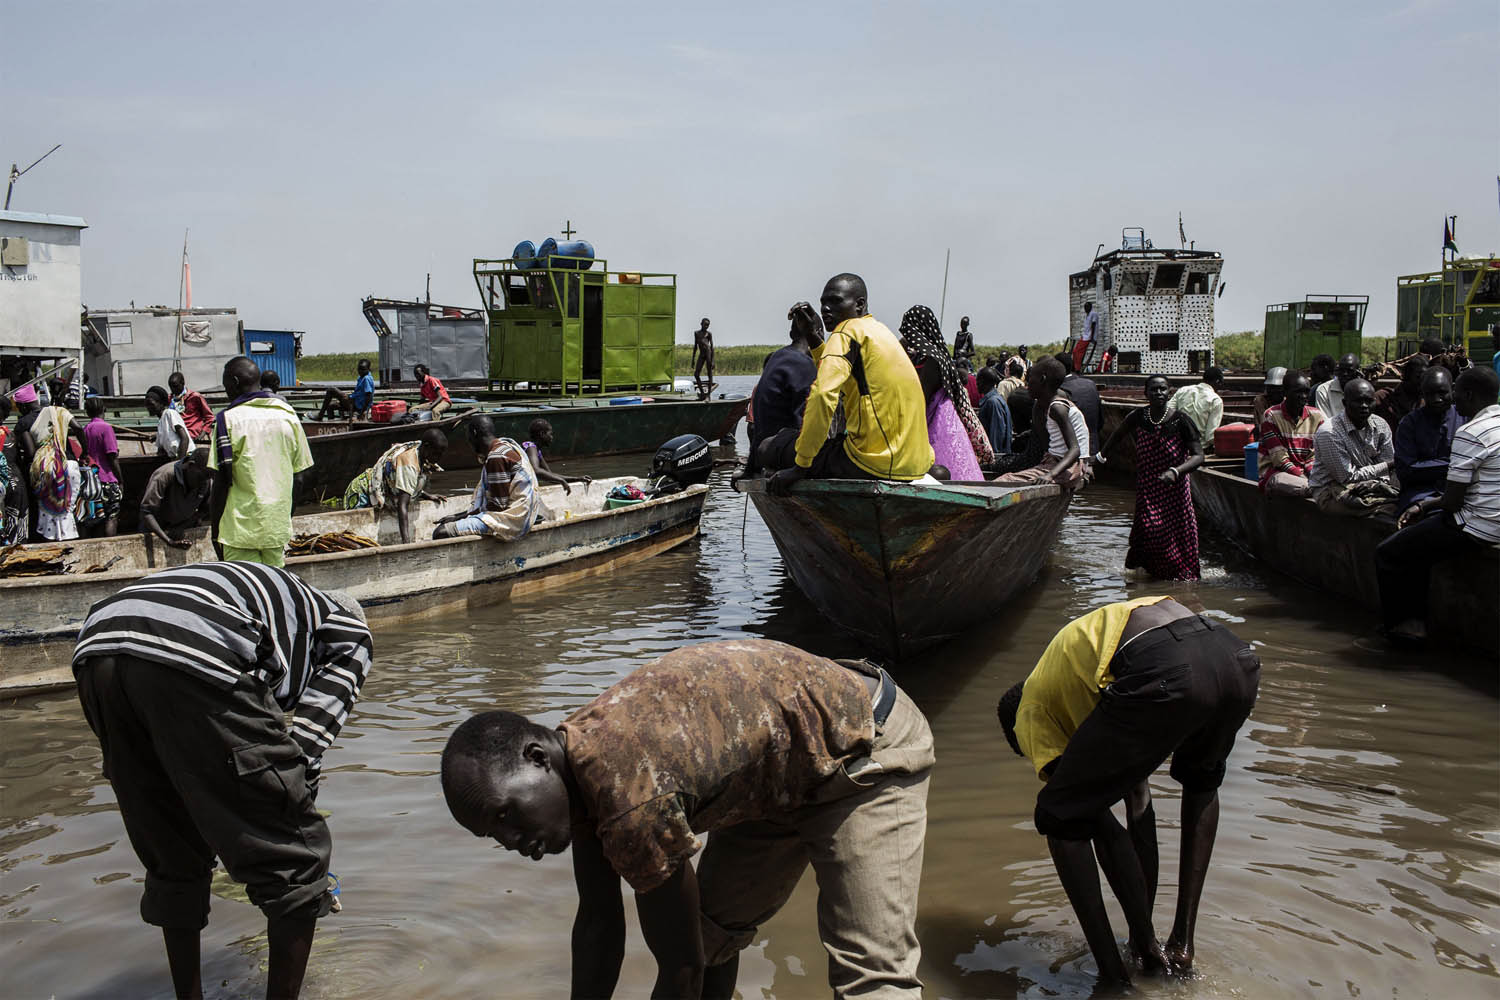 Feb. 9, 2014. South Sudanese internally displaced people (IDP) get on boats at Mingkaman's temporary camp, as they head back to Bor, South Sudan.